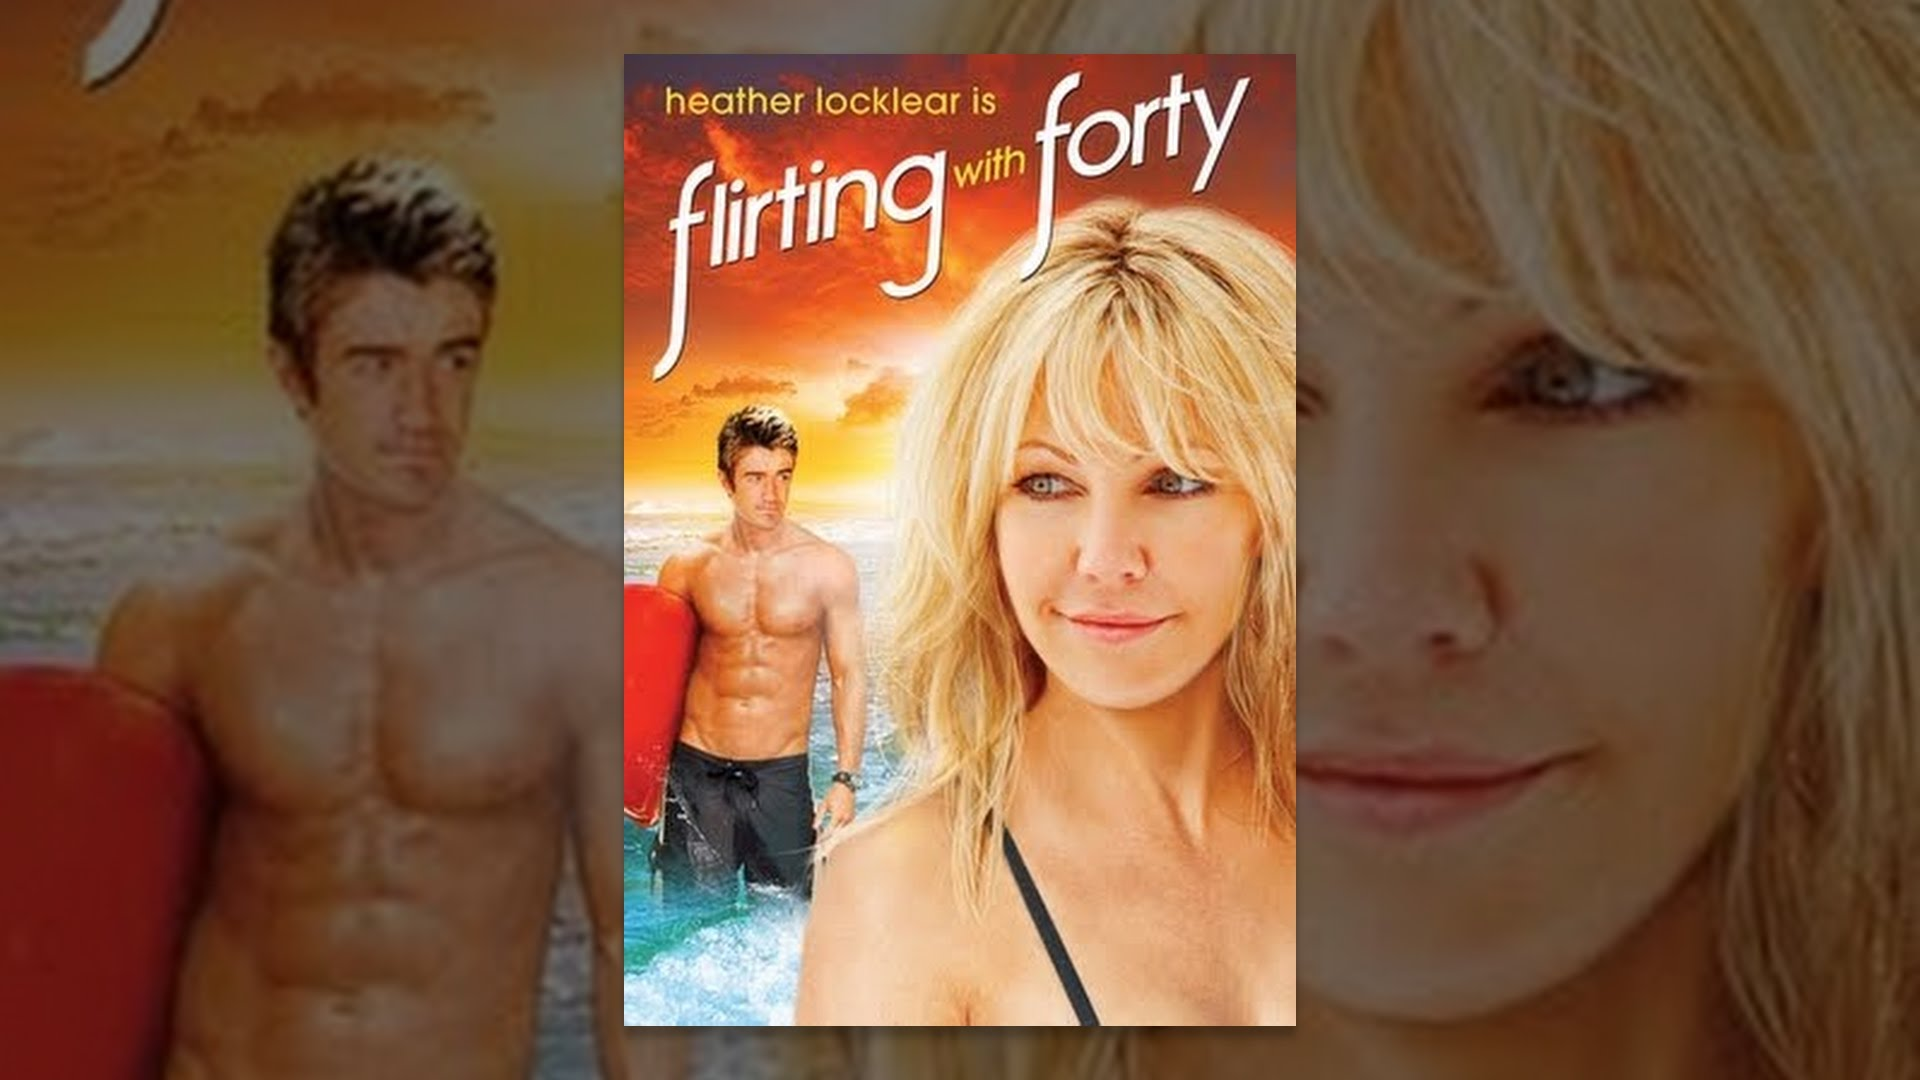 flirting with forty watch online movie free english